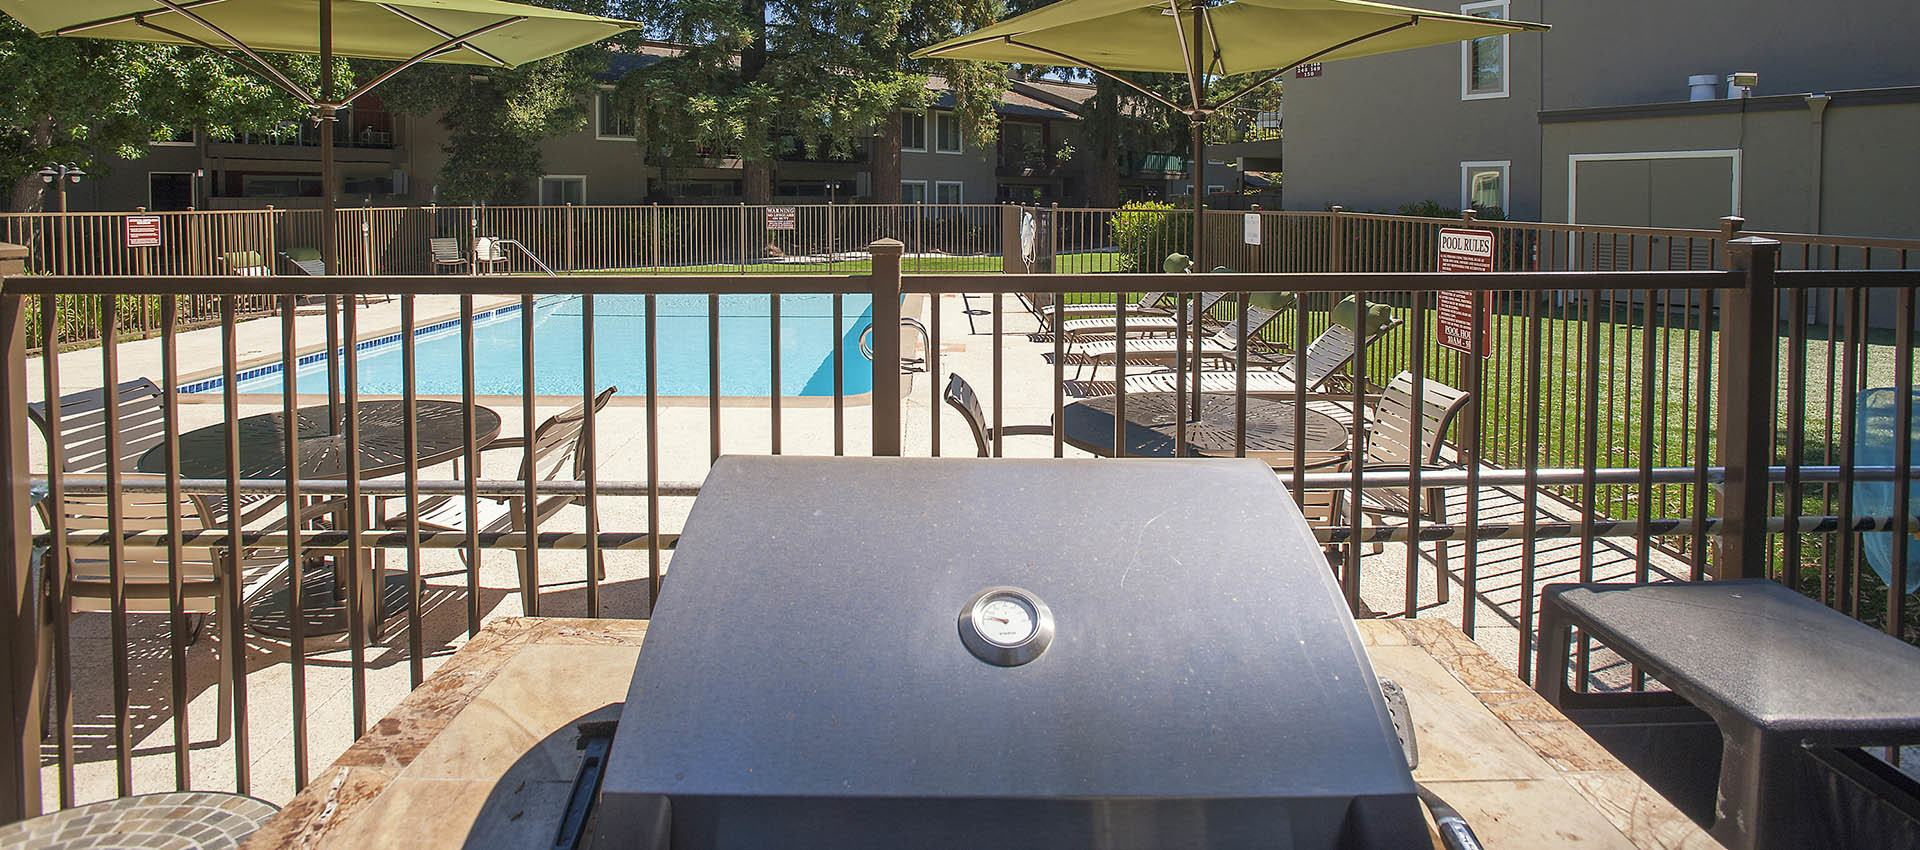 Bbq Grill at Flora Condominium Rentals in Walnut Creek, California